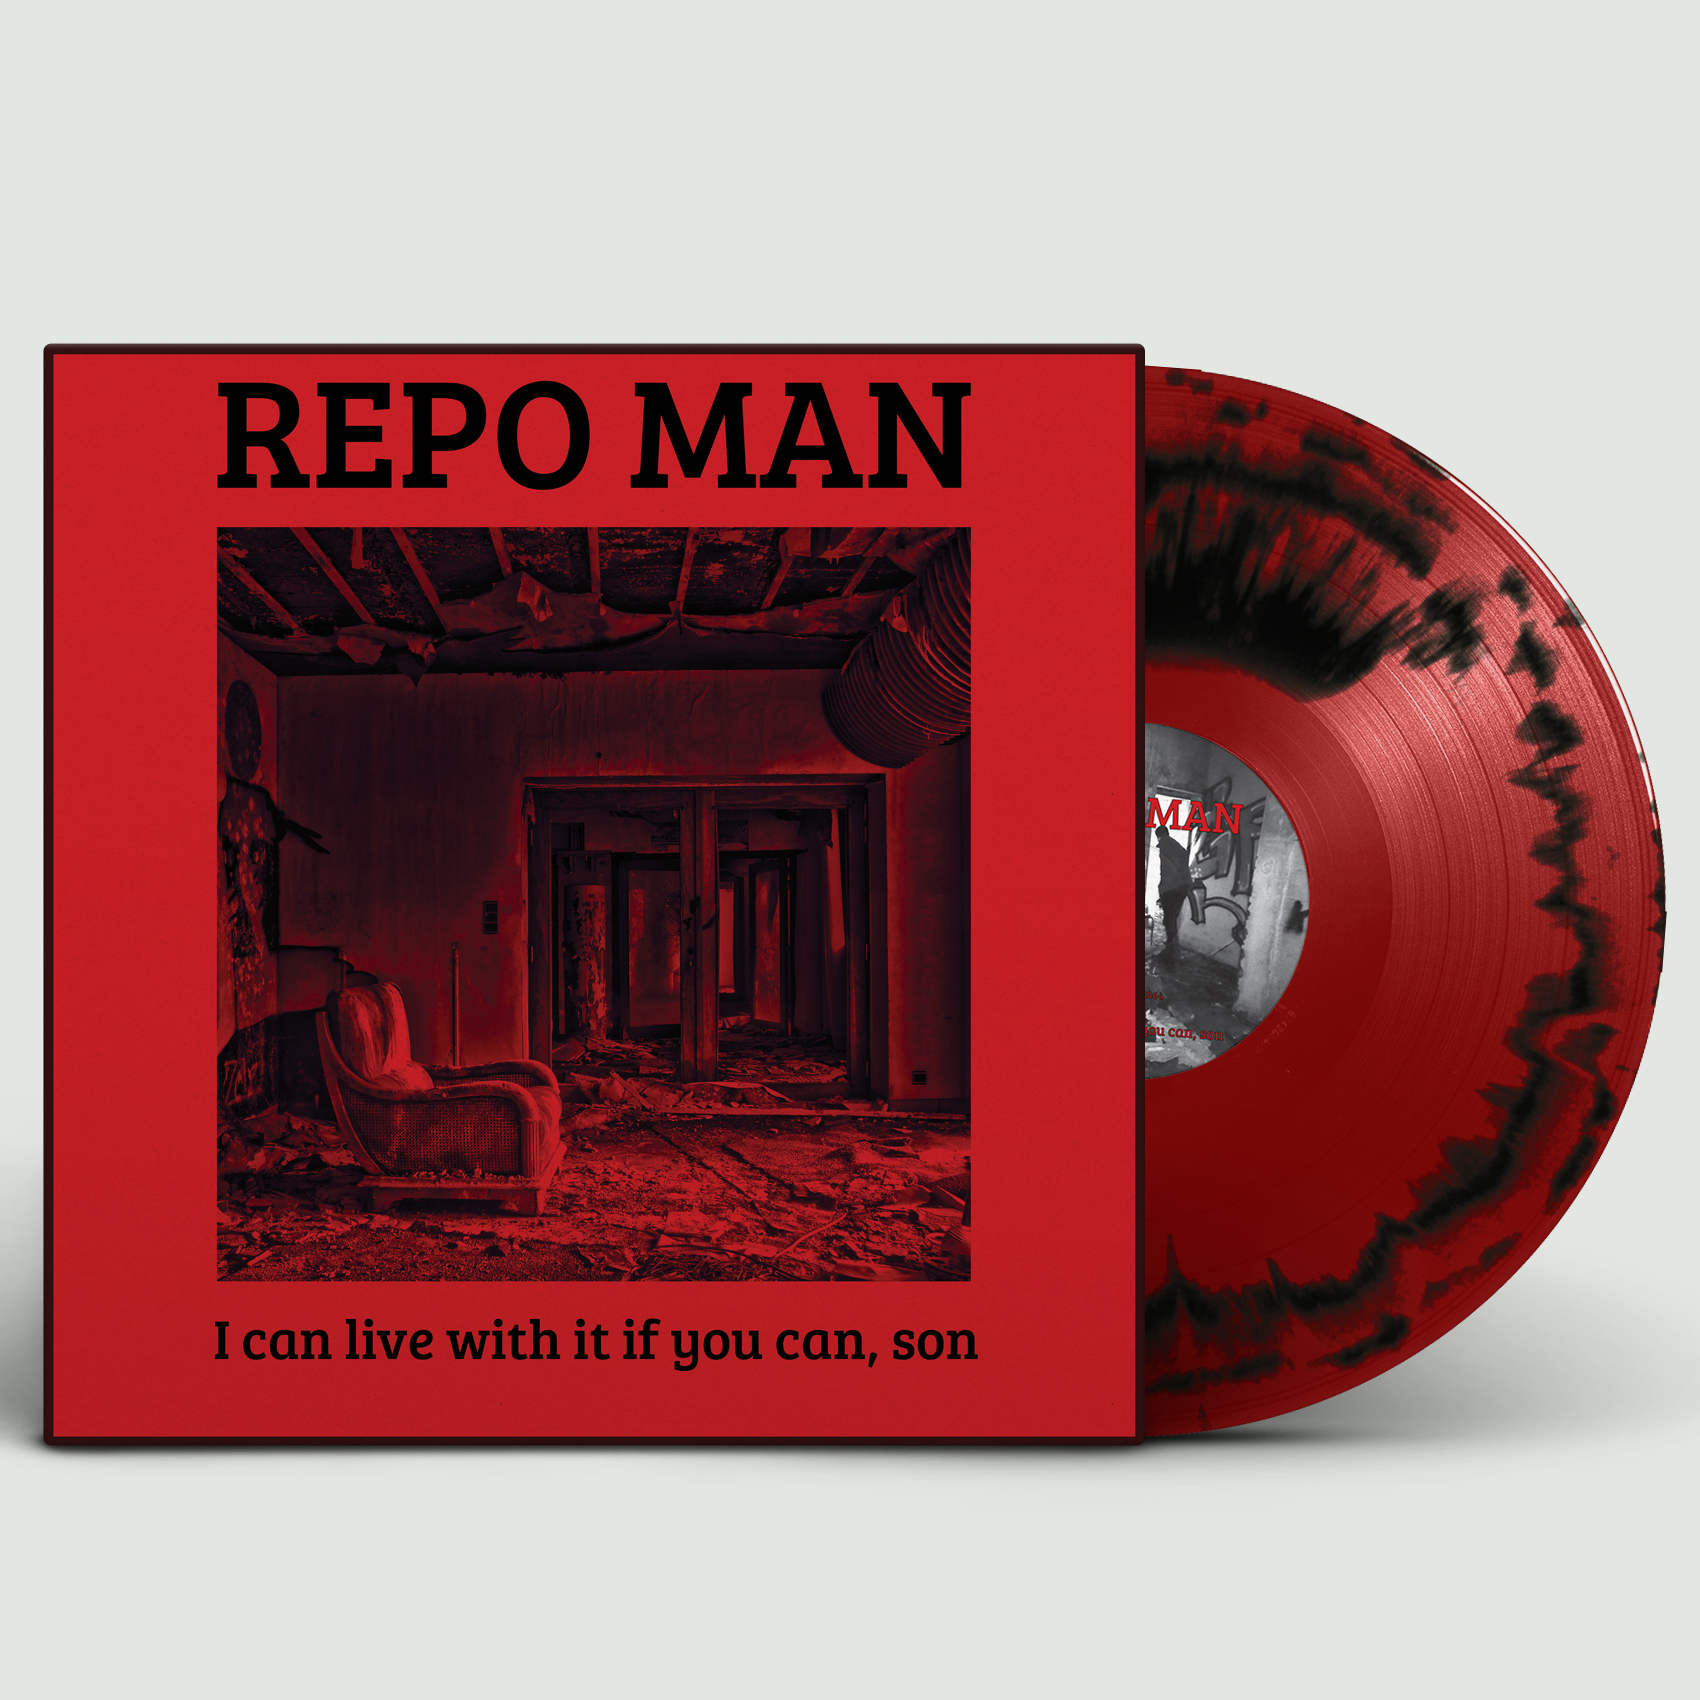 Vinyl-Effects-Mockup-Side-AB-Ruby-Tuesday-and-Black--With-Sleeve.jpg